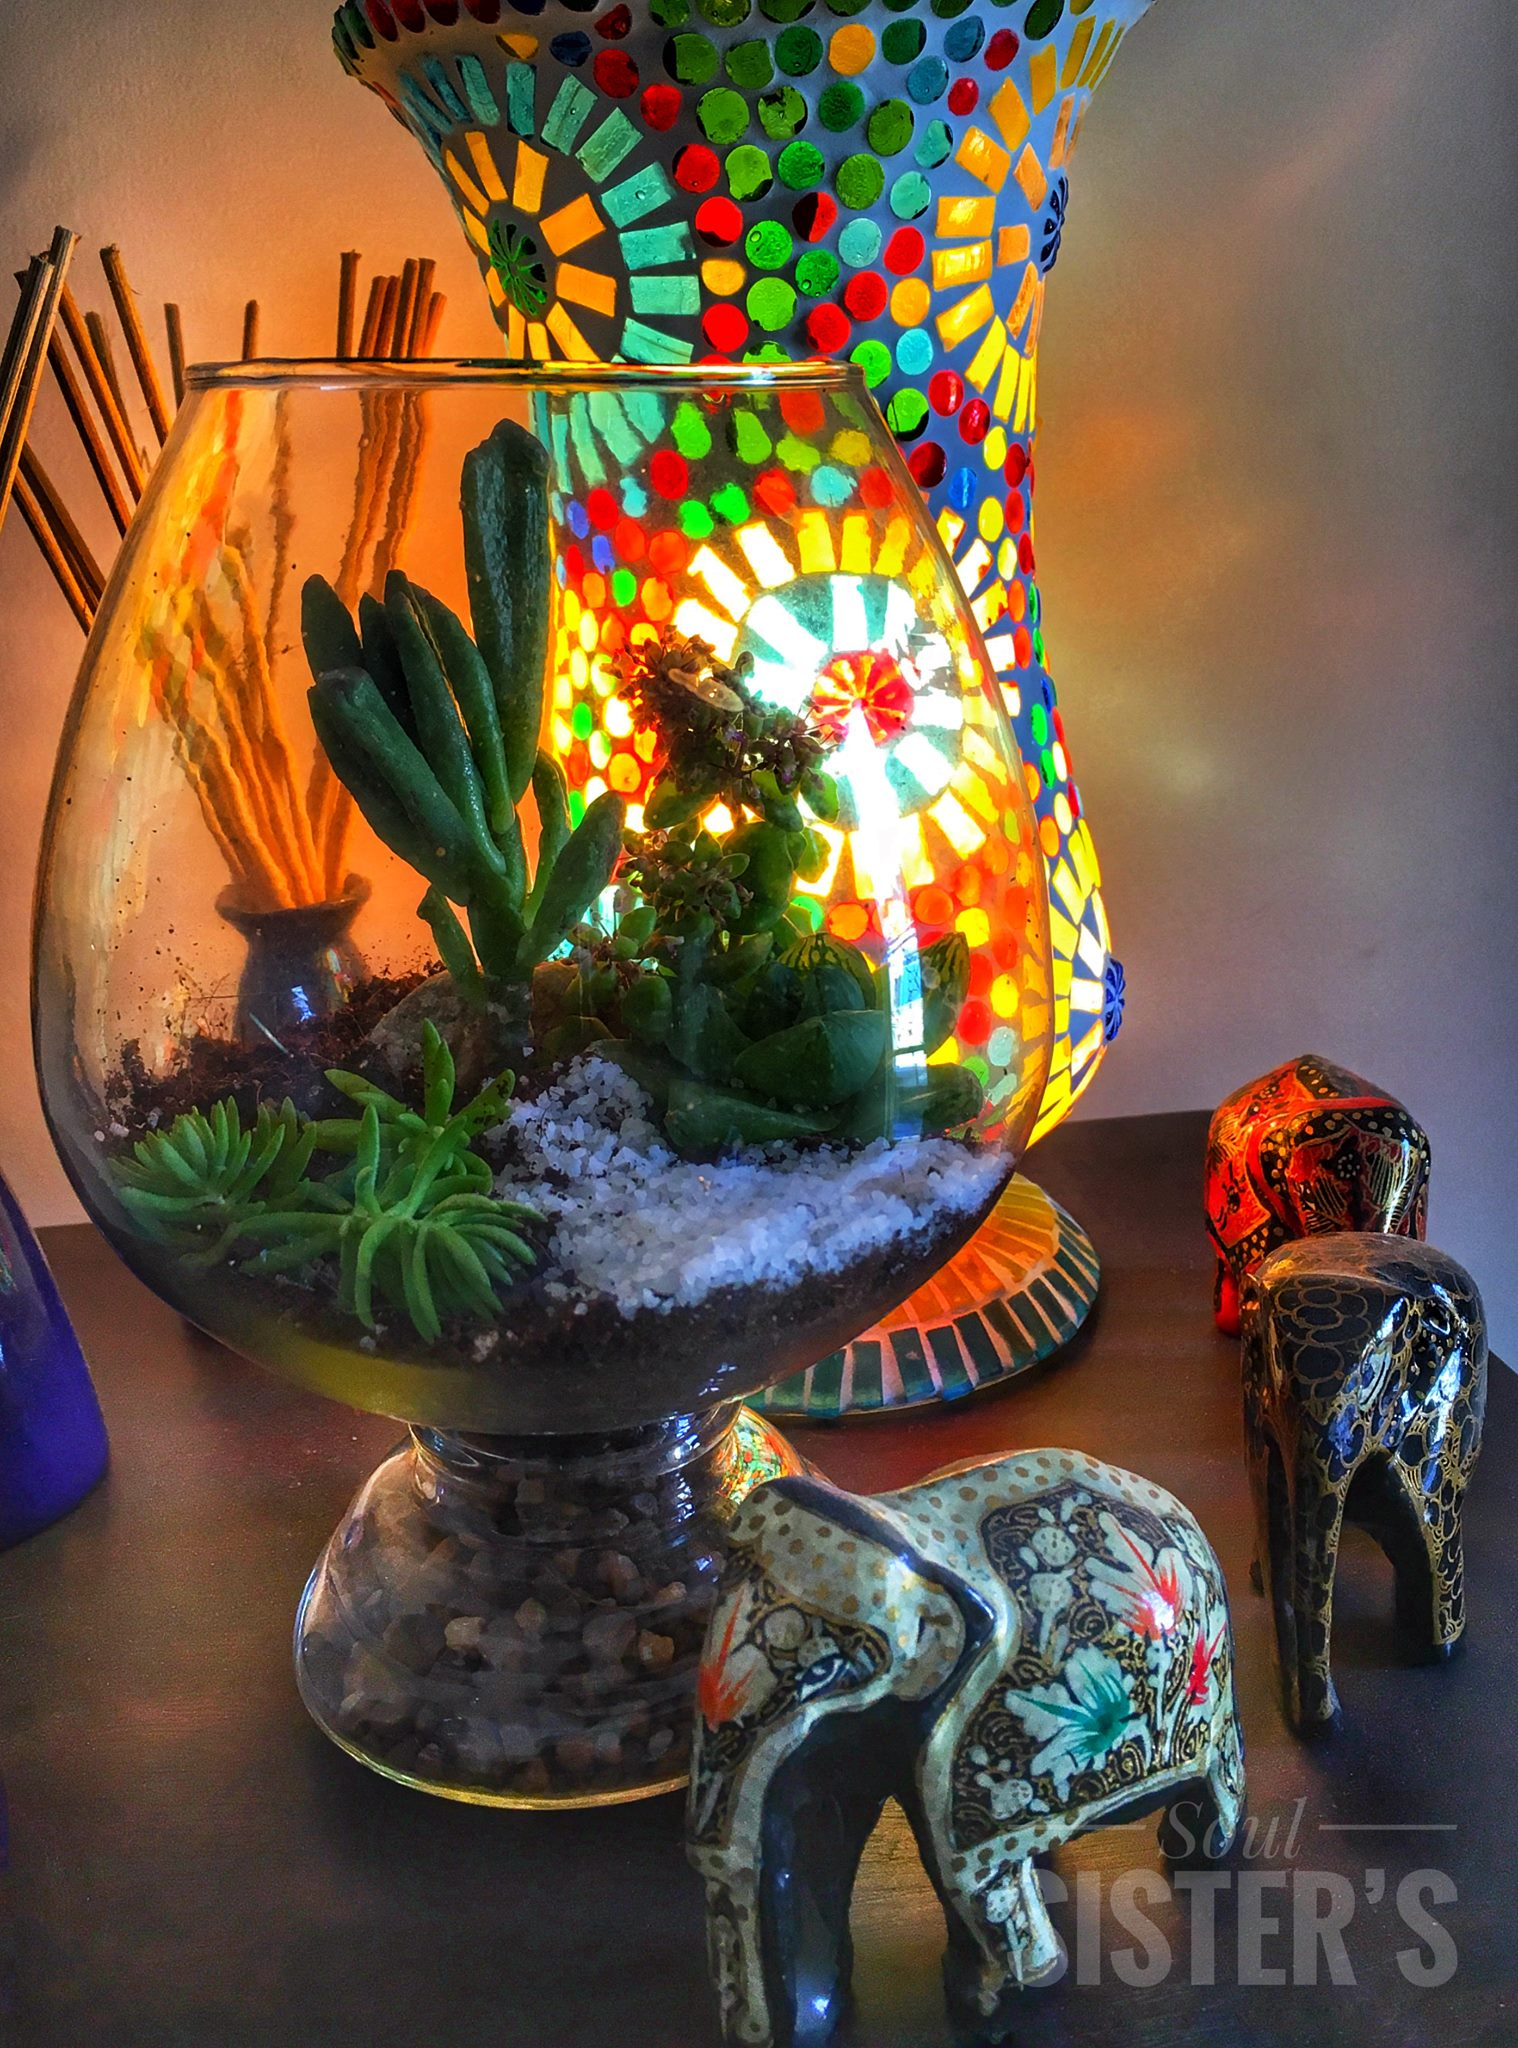 MIni garden in the glass